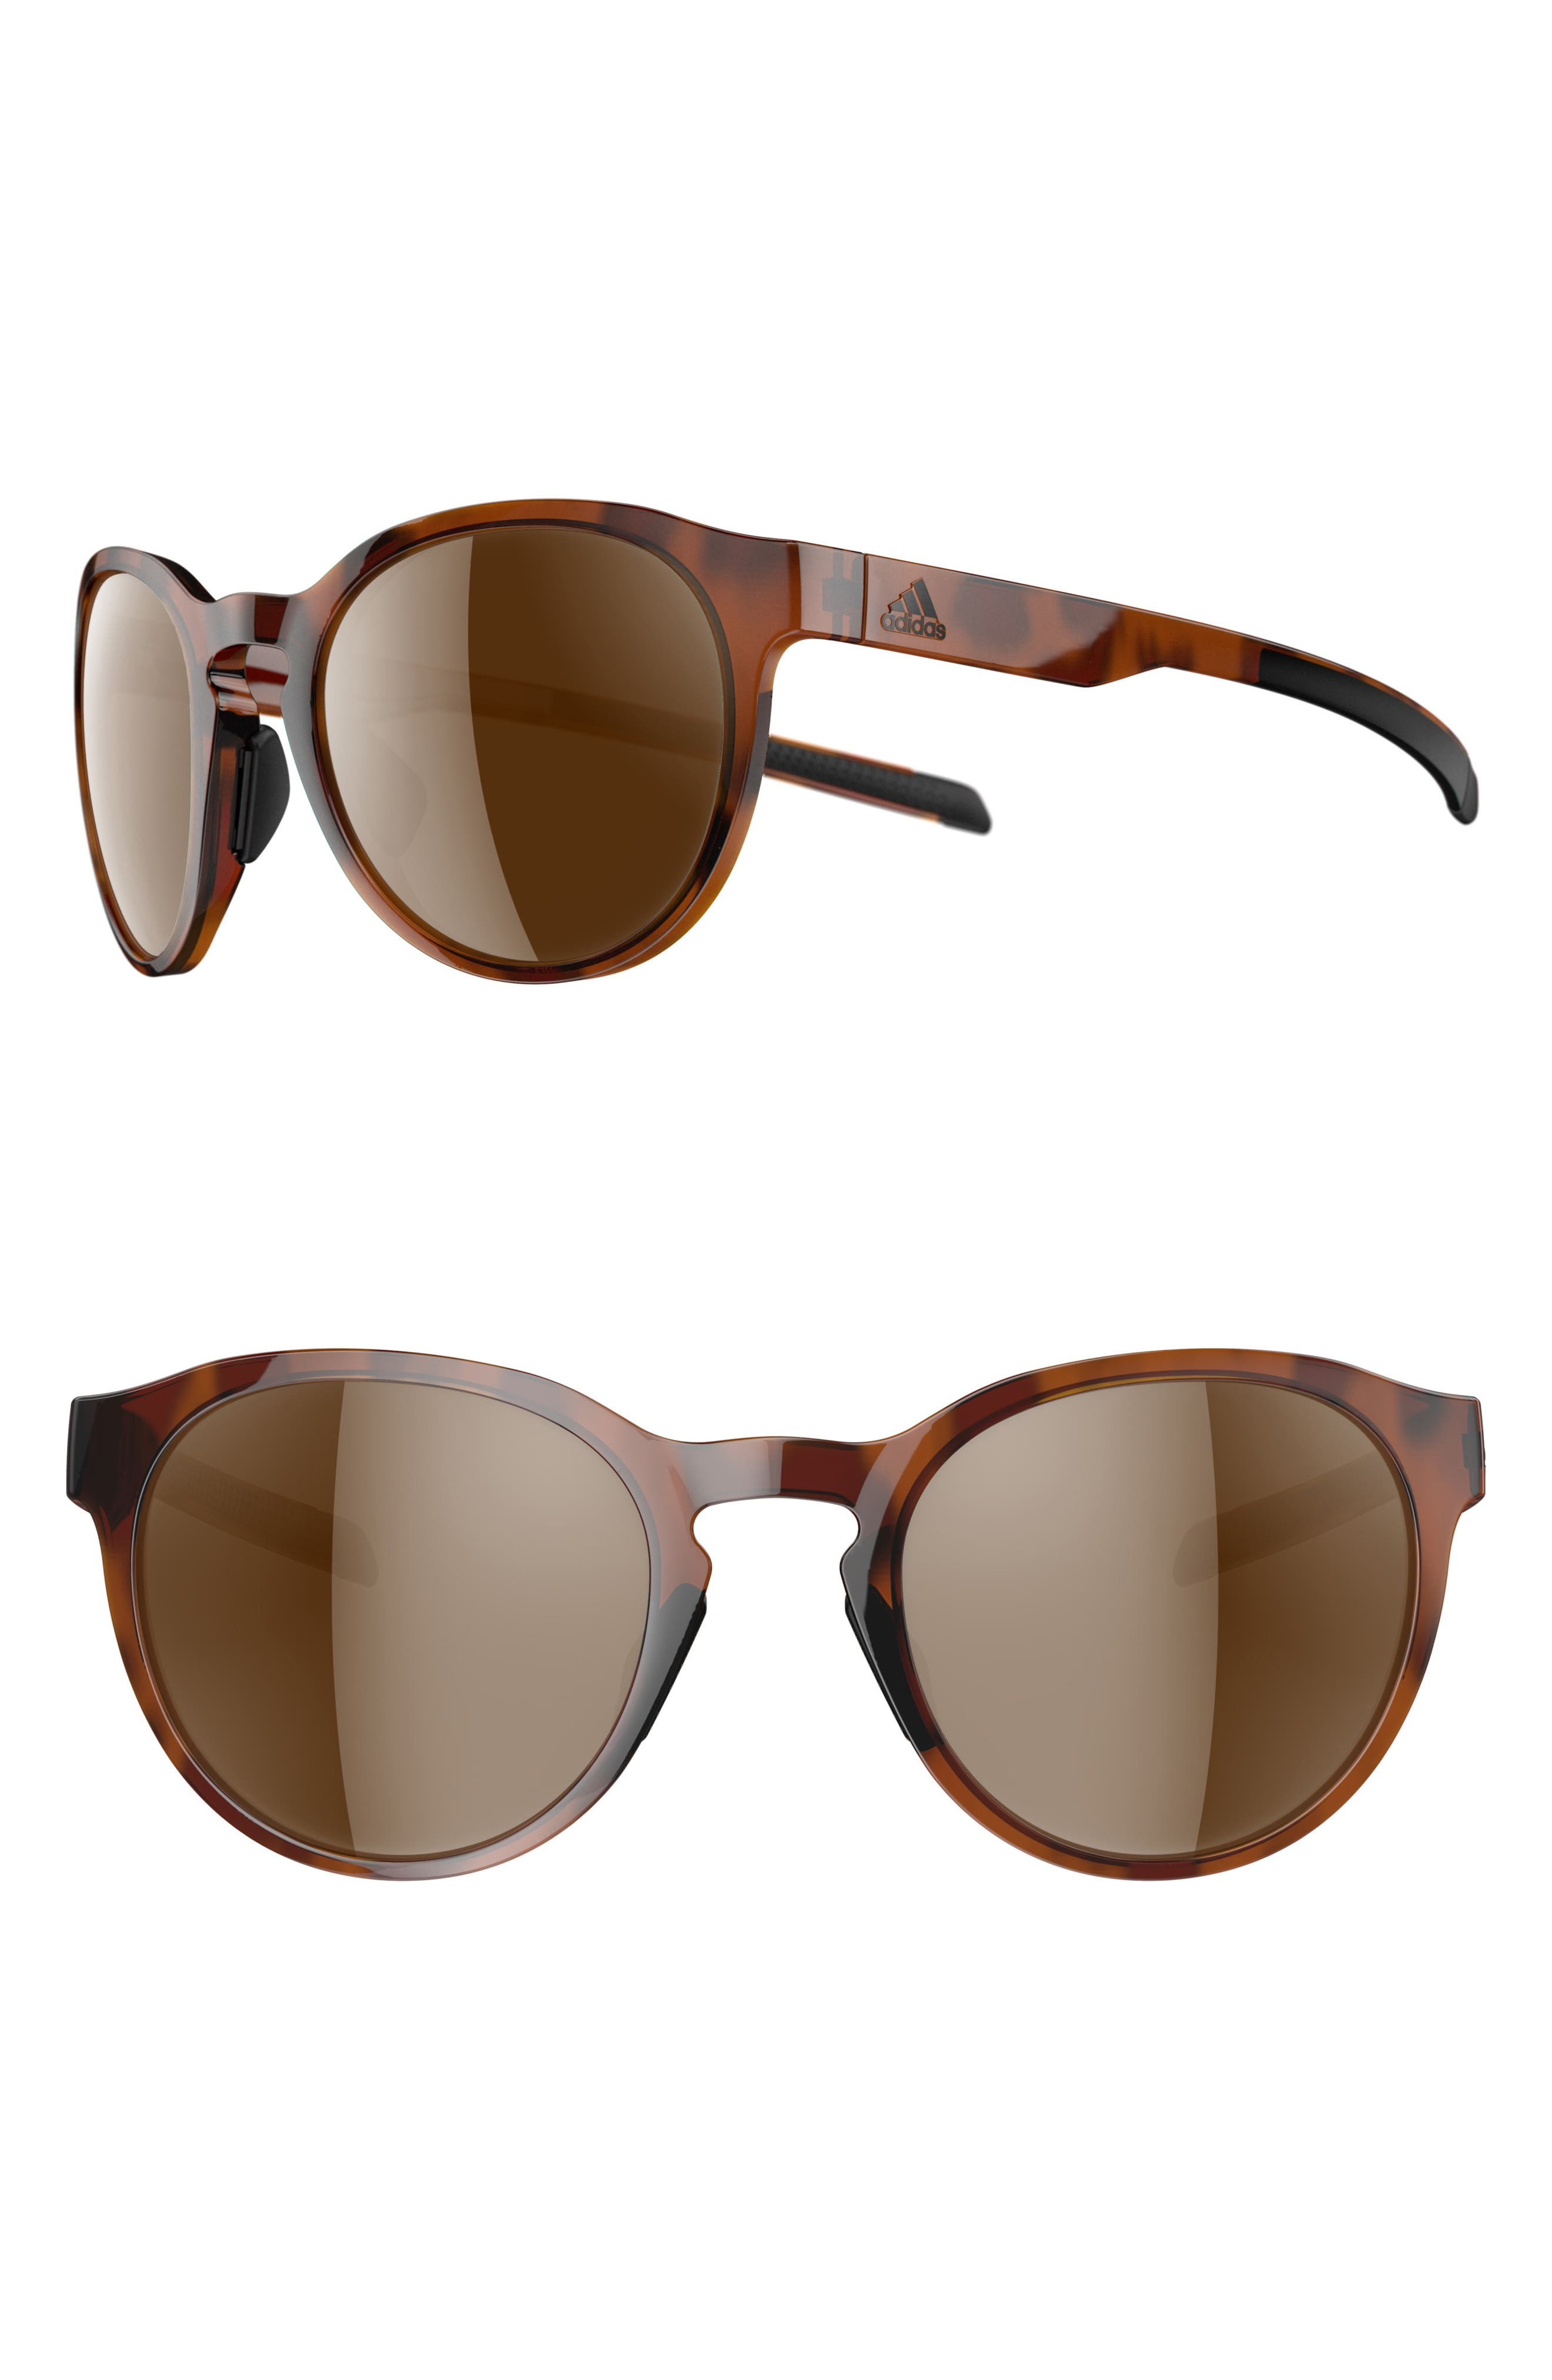 Proshift 52mm Round Sport Sunglasses,                         Main,                         color, BROWN HAVANA/ BROWN